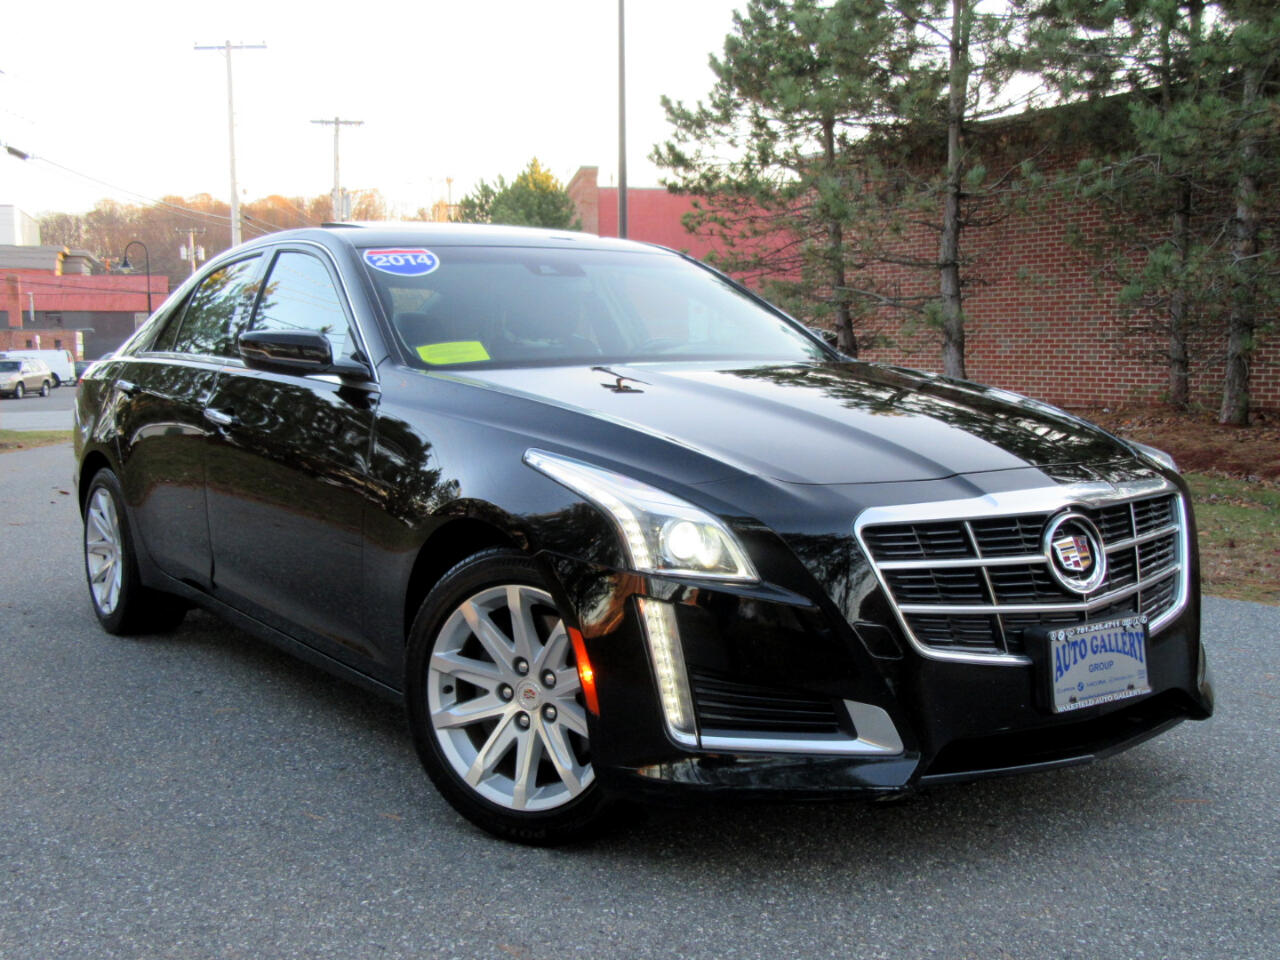 2014 Cadillac CTS Sedan 4dr Sdn 3.6L Luxury AWD Navigation Backup Camera